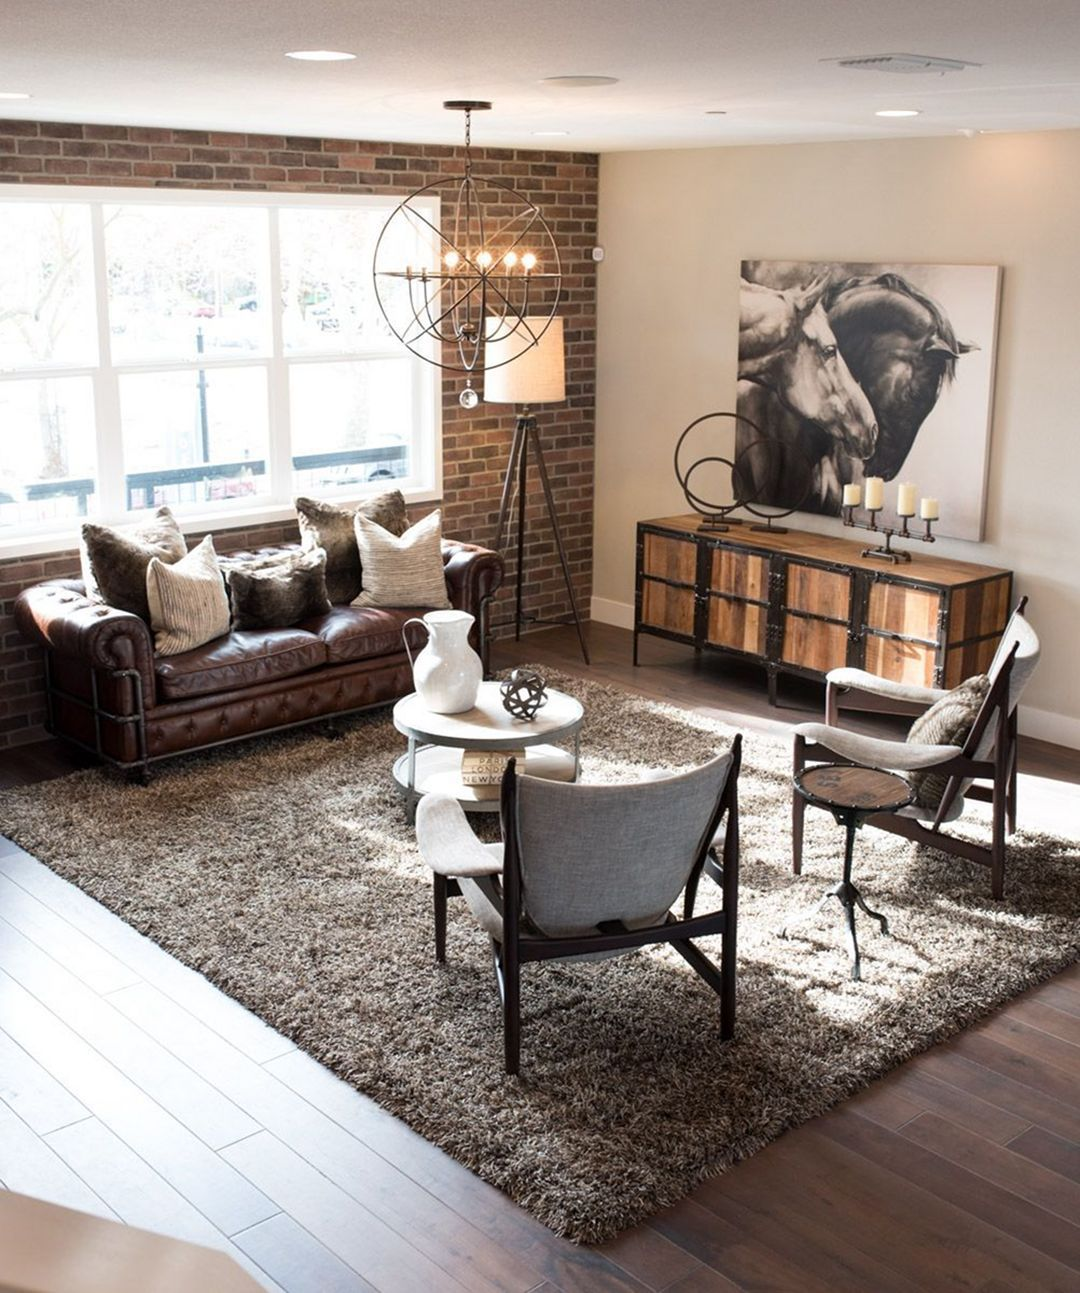 20 Stunning Home Rustic Decoration Ideas You Have To Try